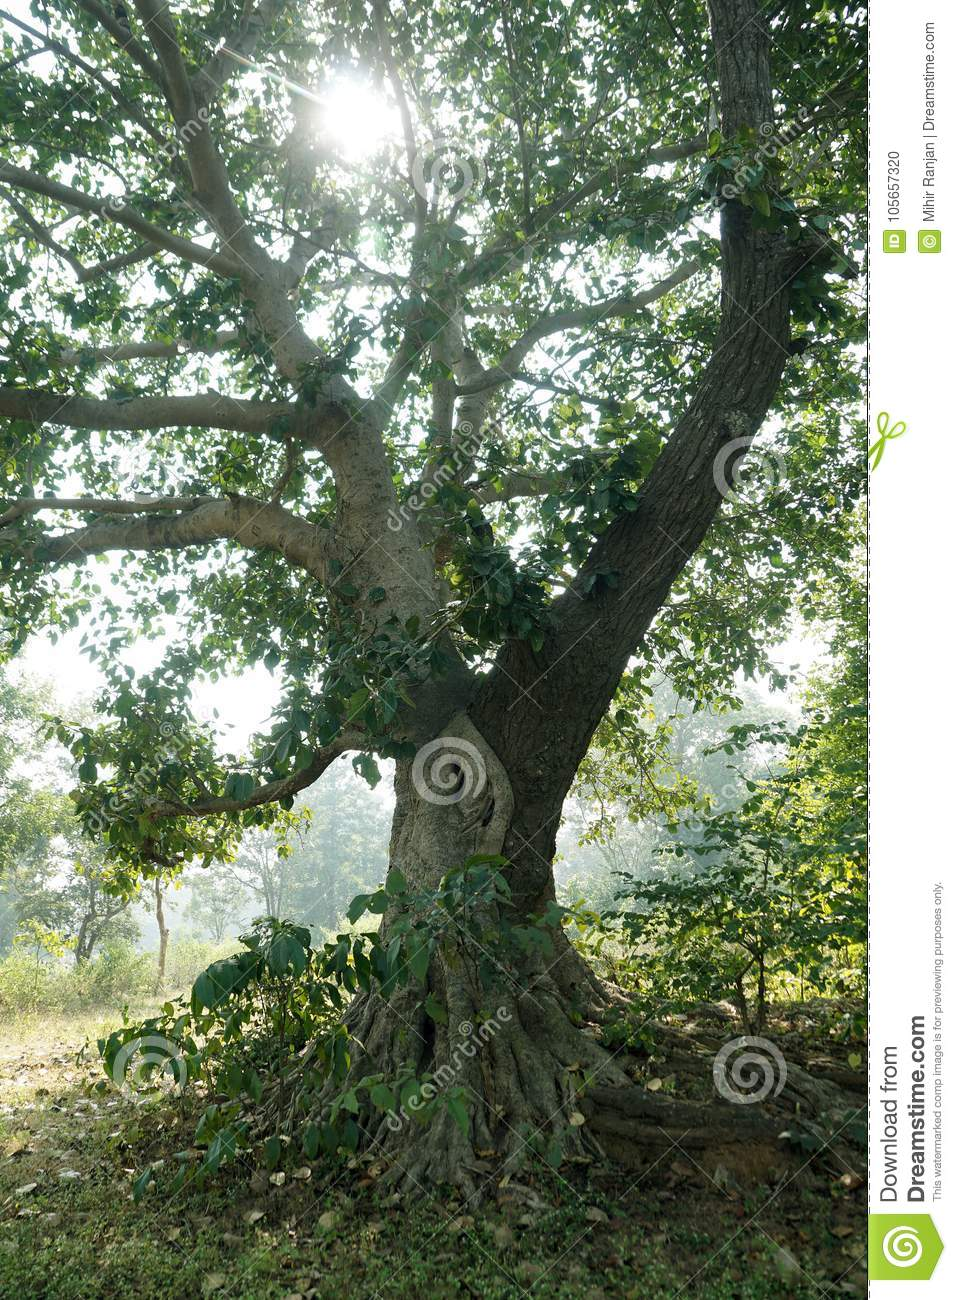 The image of natural grafting of two trees